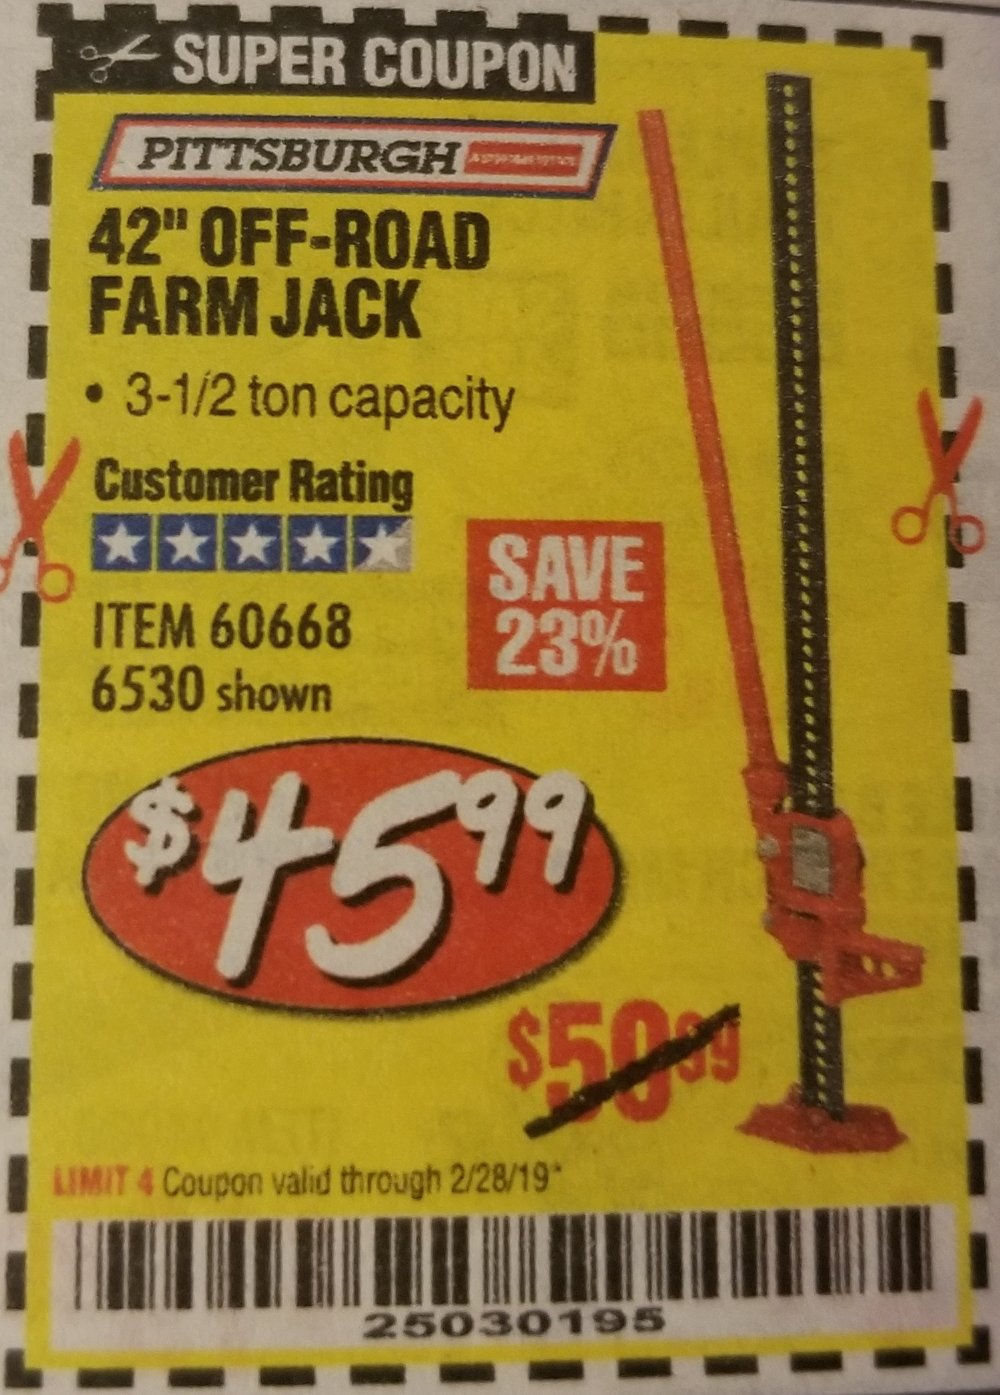 Harbor Freight Coupon, HF Coupons - off road jack